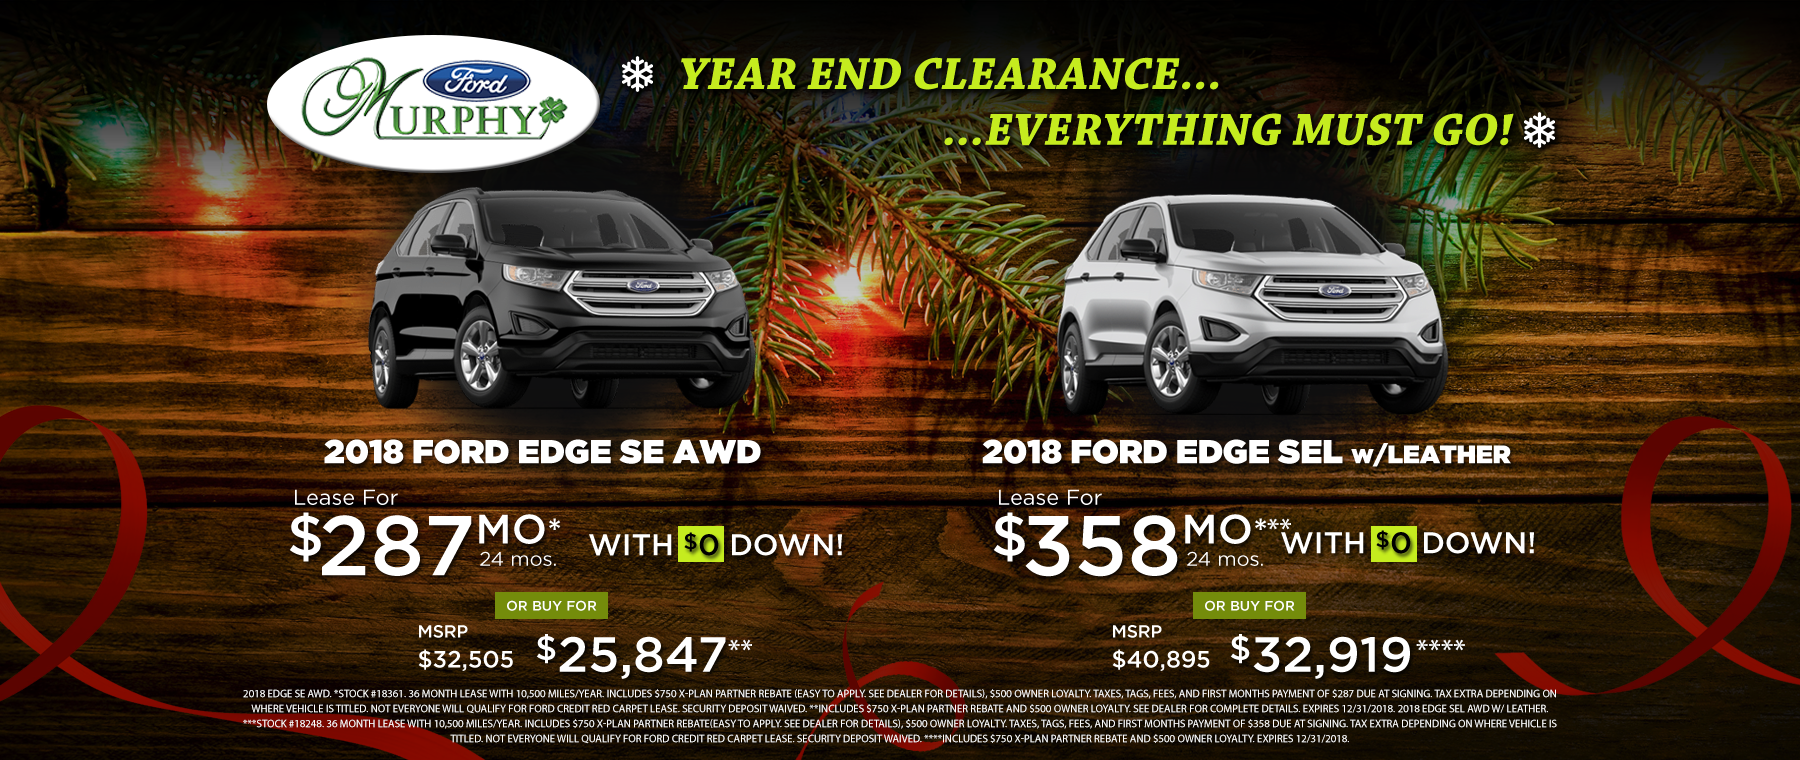 2018 Ford Edge December Lease Offer